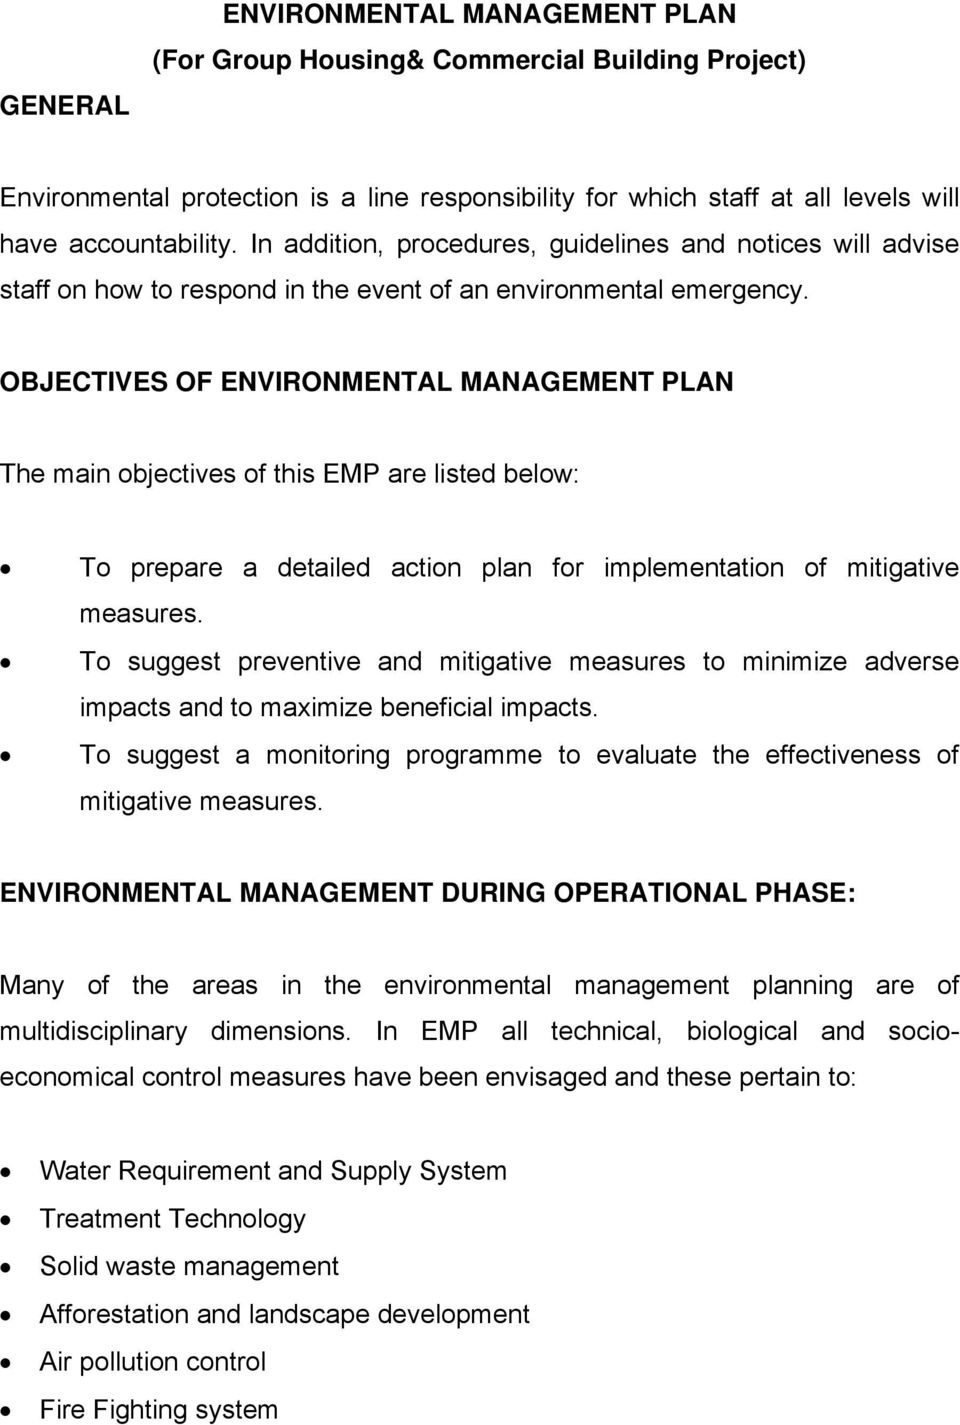 OBJECTIVES OF ENVIRONMENTAL MANAGEMENT PLAN The main objectives of this EMP are listed below: To prepare a detailed action plan for implementation of mitigative measures.